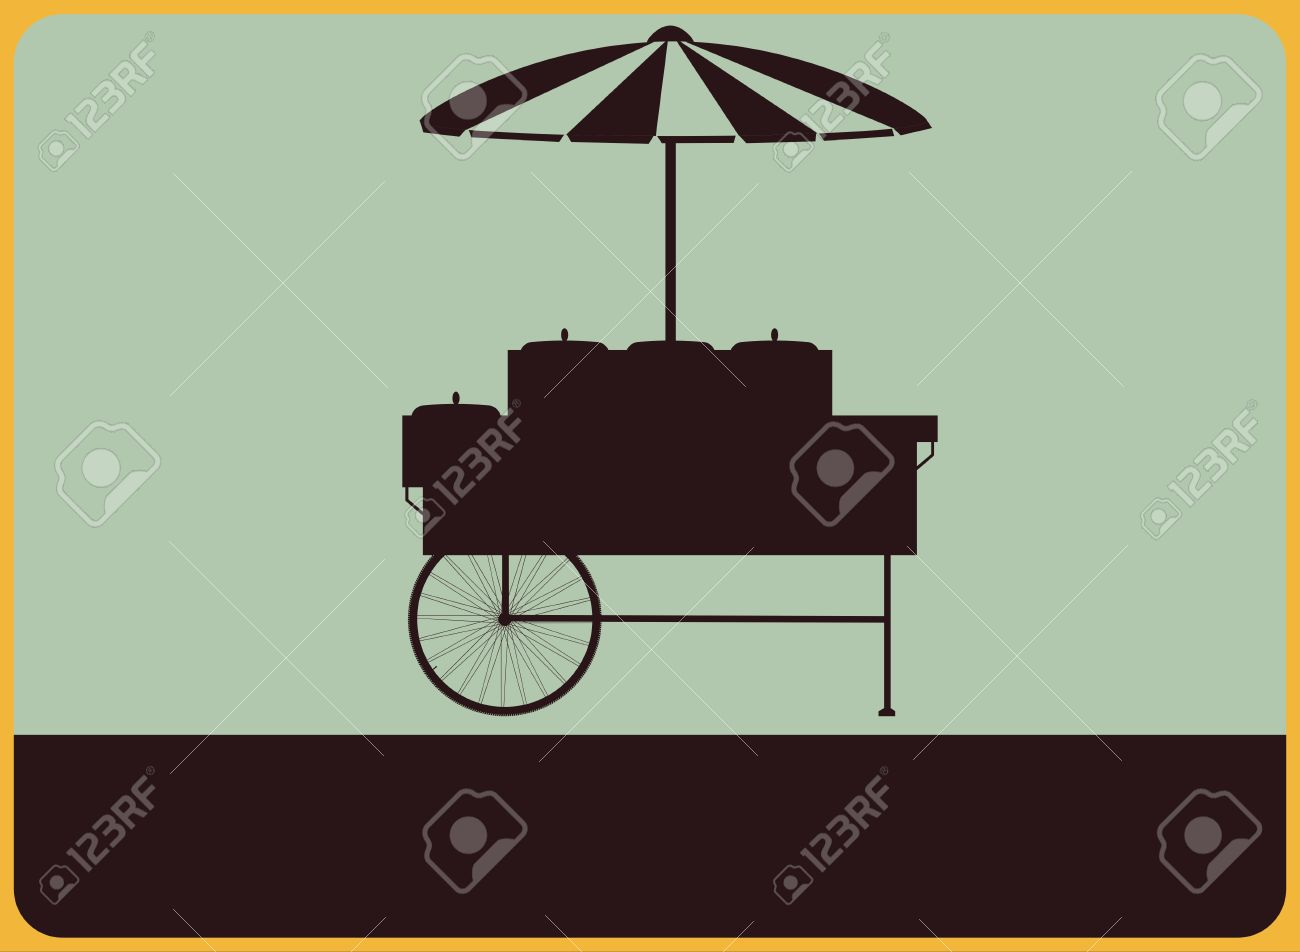 Vintage street sign with the silhouette of the vendors cart Stock Vector - 19810508